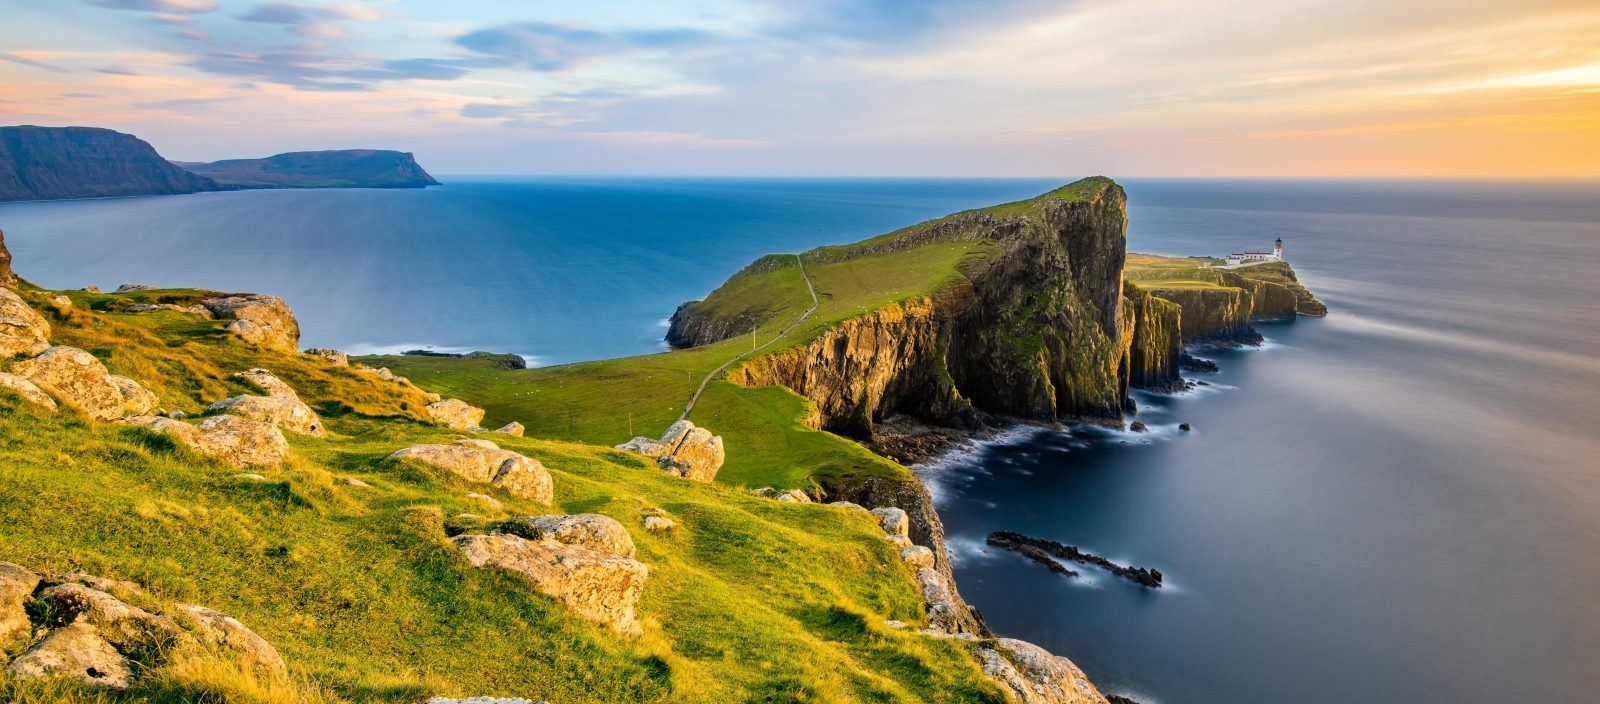 Scotland Hiking Adventure: From the Highlands to Islands